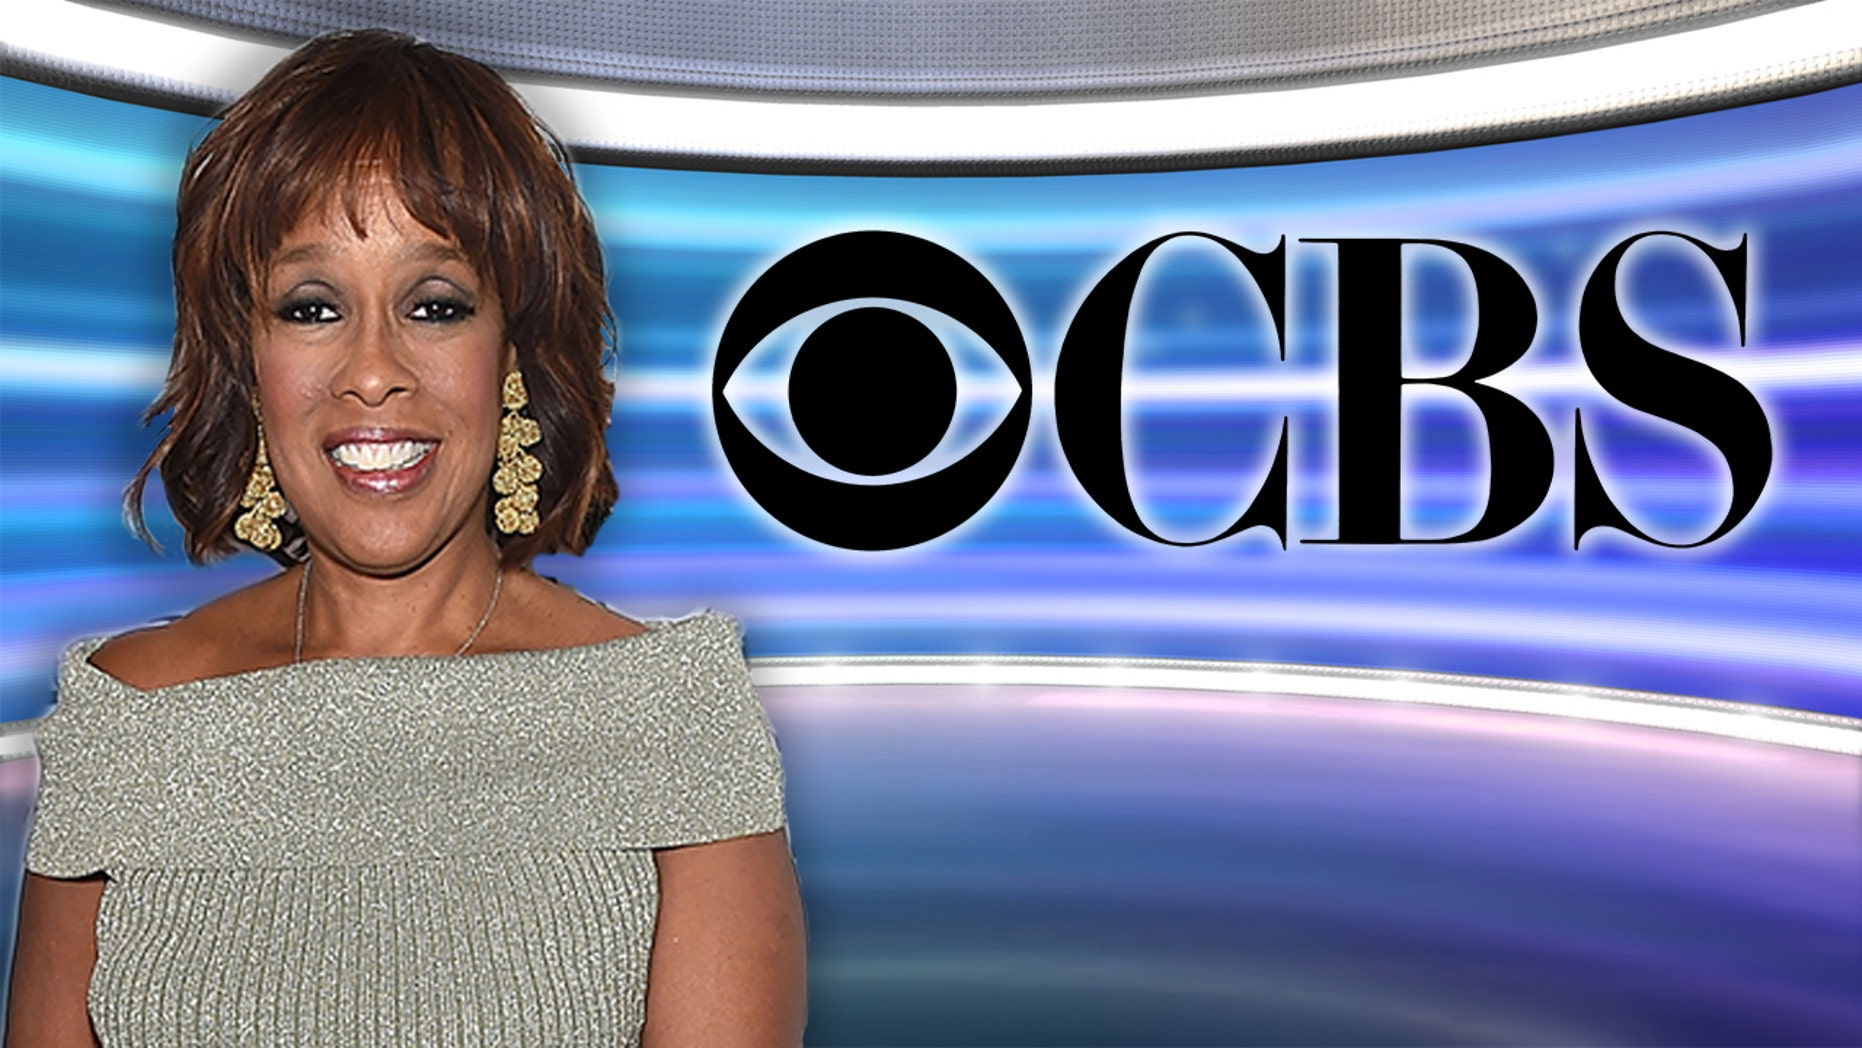 """CBS This Morning"" co-host Gayle King was strikingly absent from her show on Friday after she criticized her network."